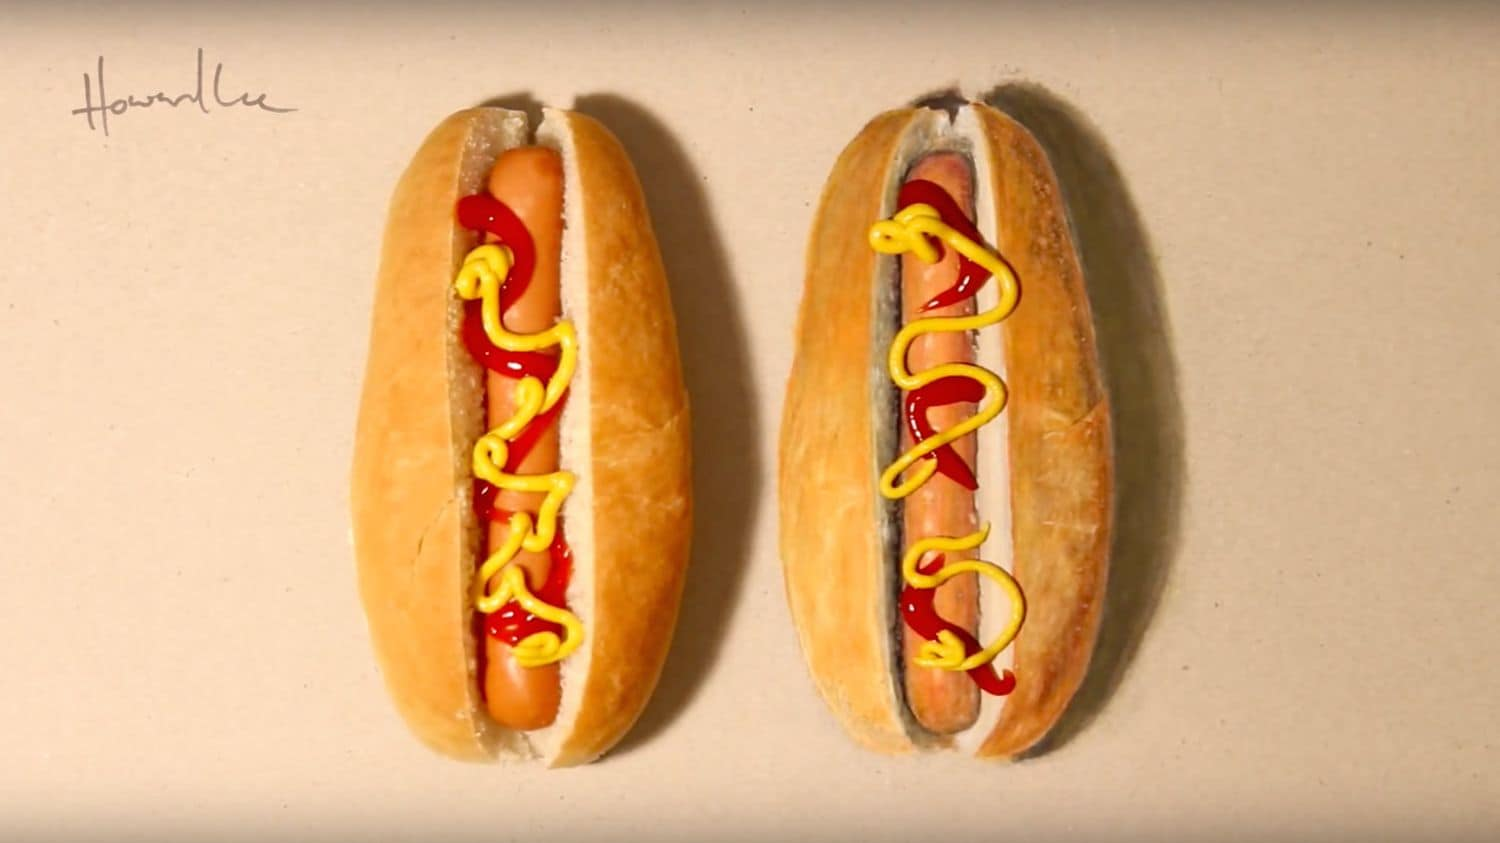 Hot dog real